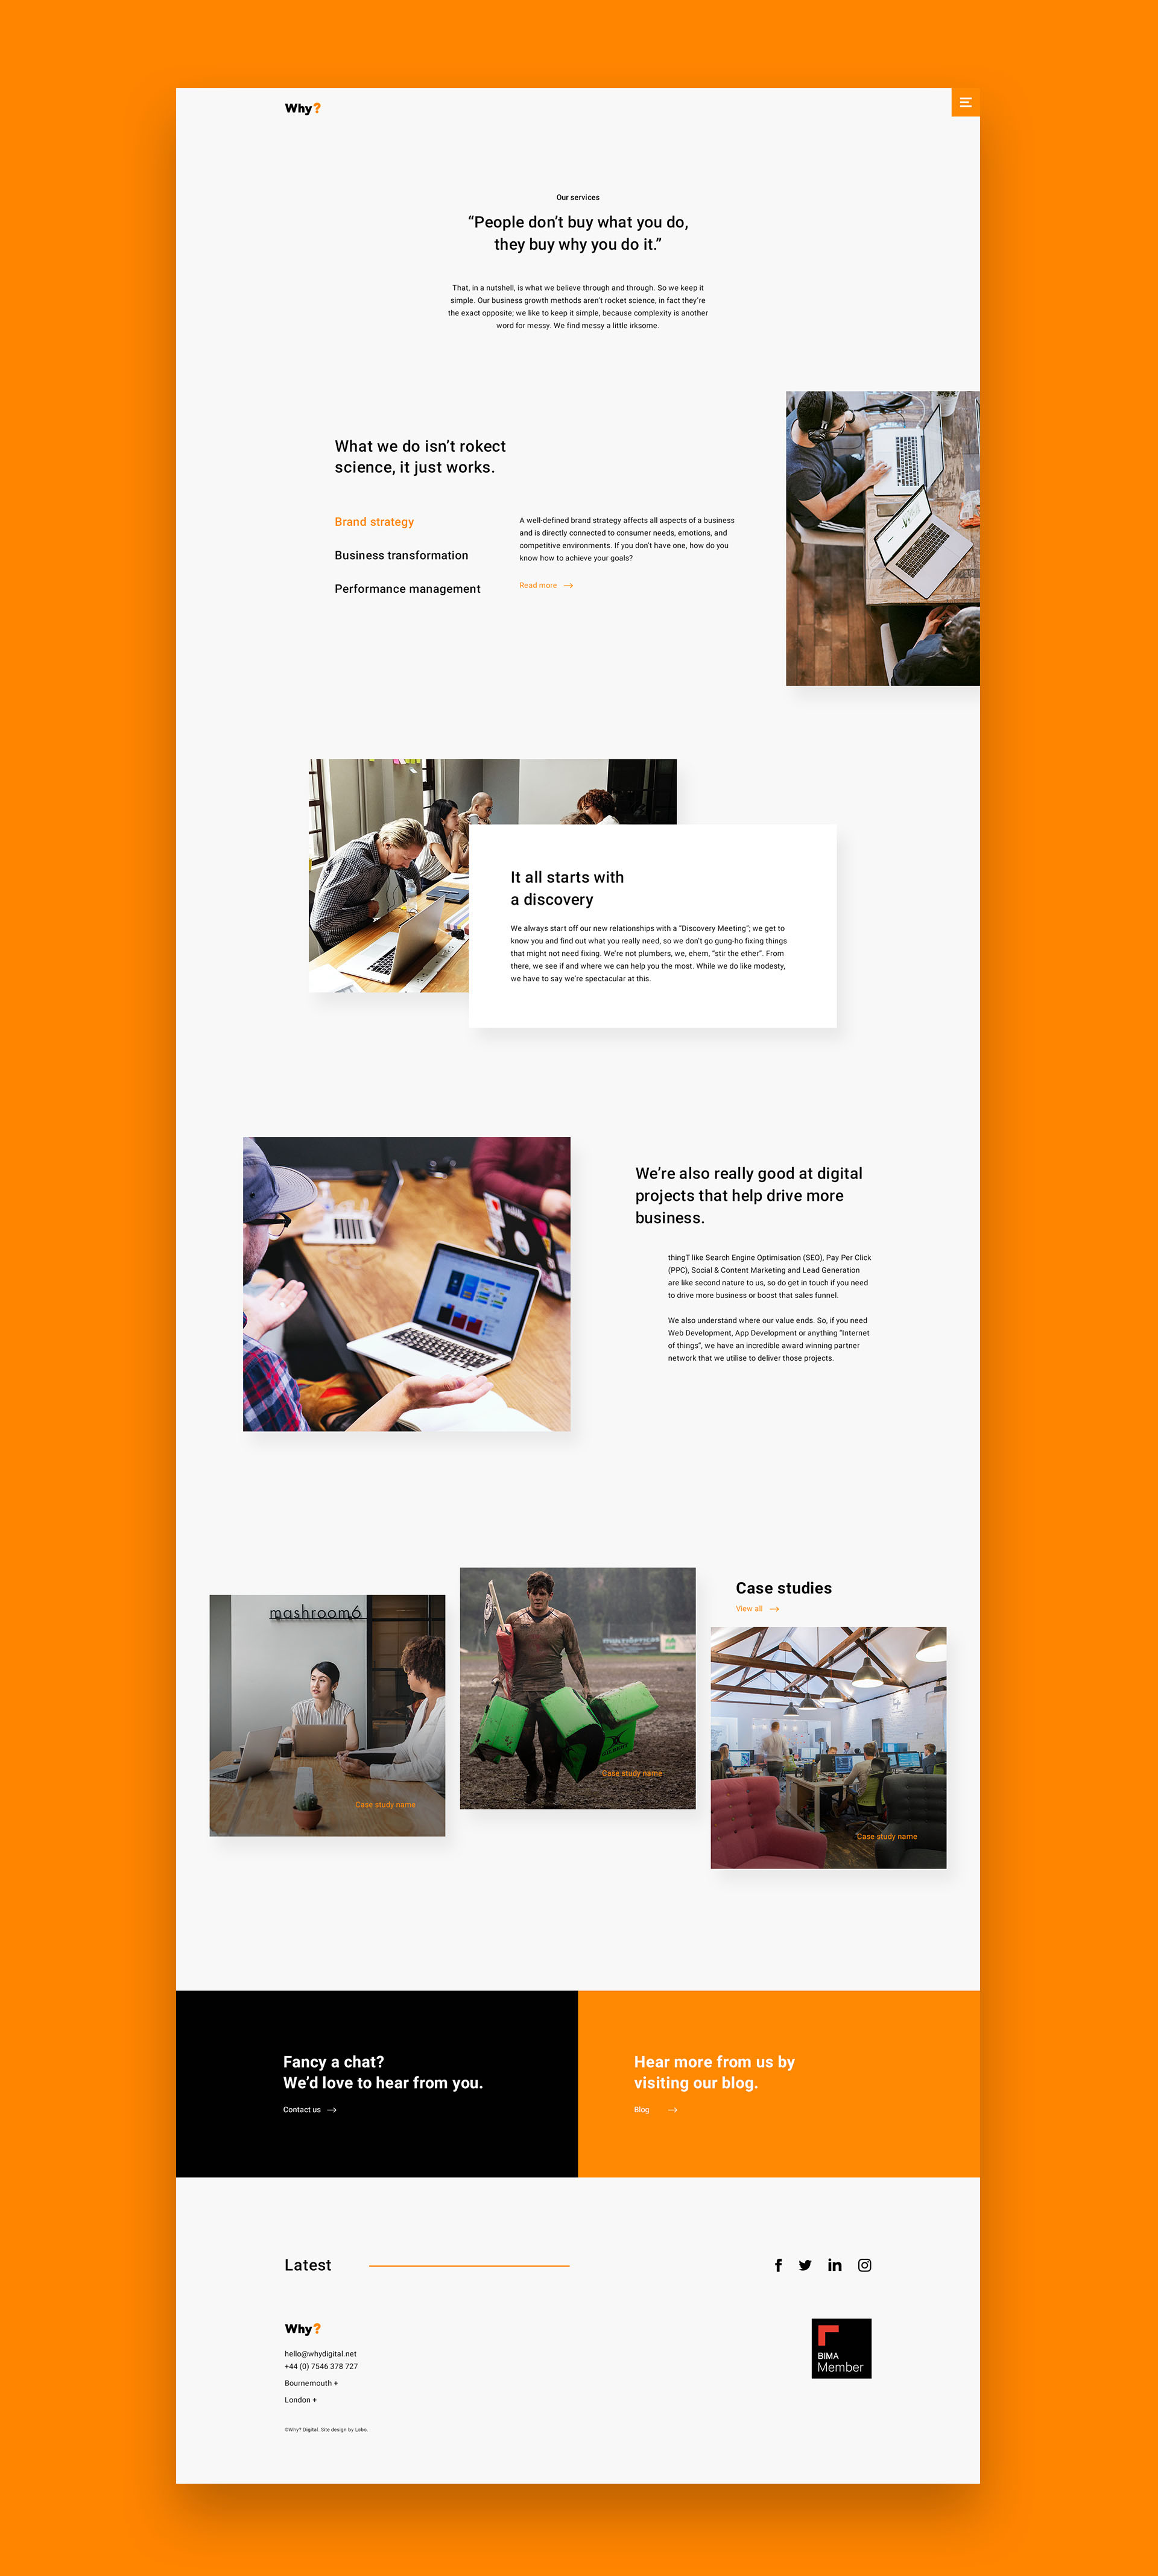 07 Lobo Creative - Why Digital - Bournemouth website design case study.jpg